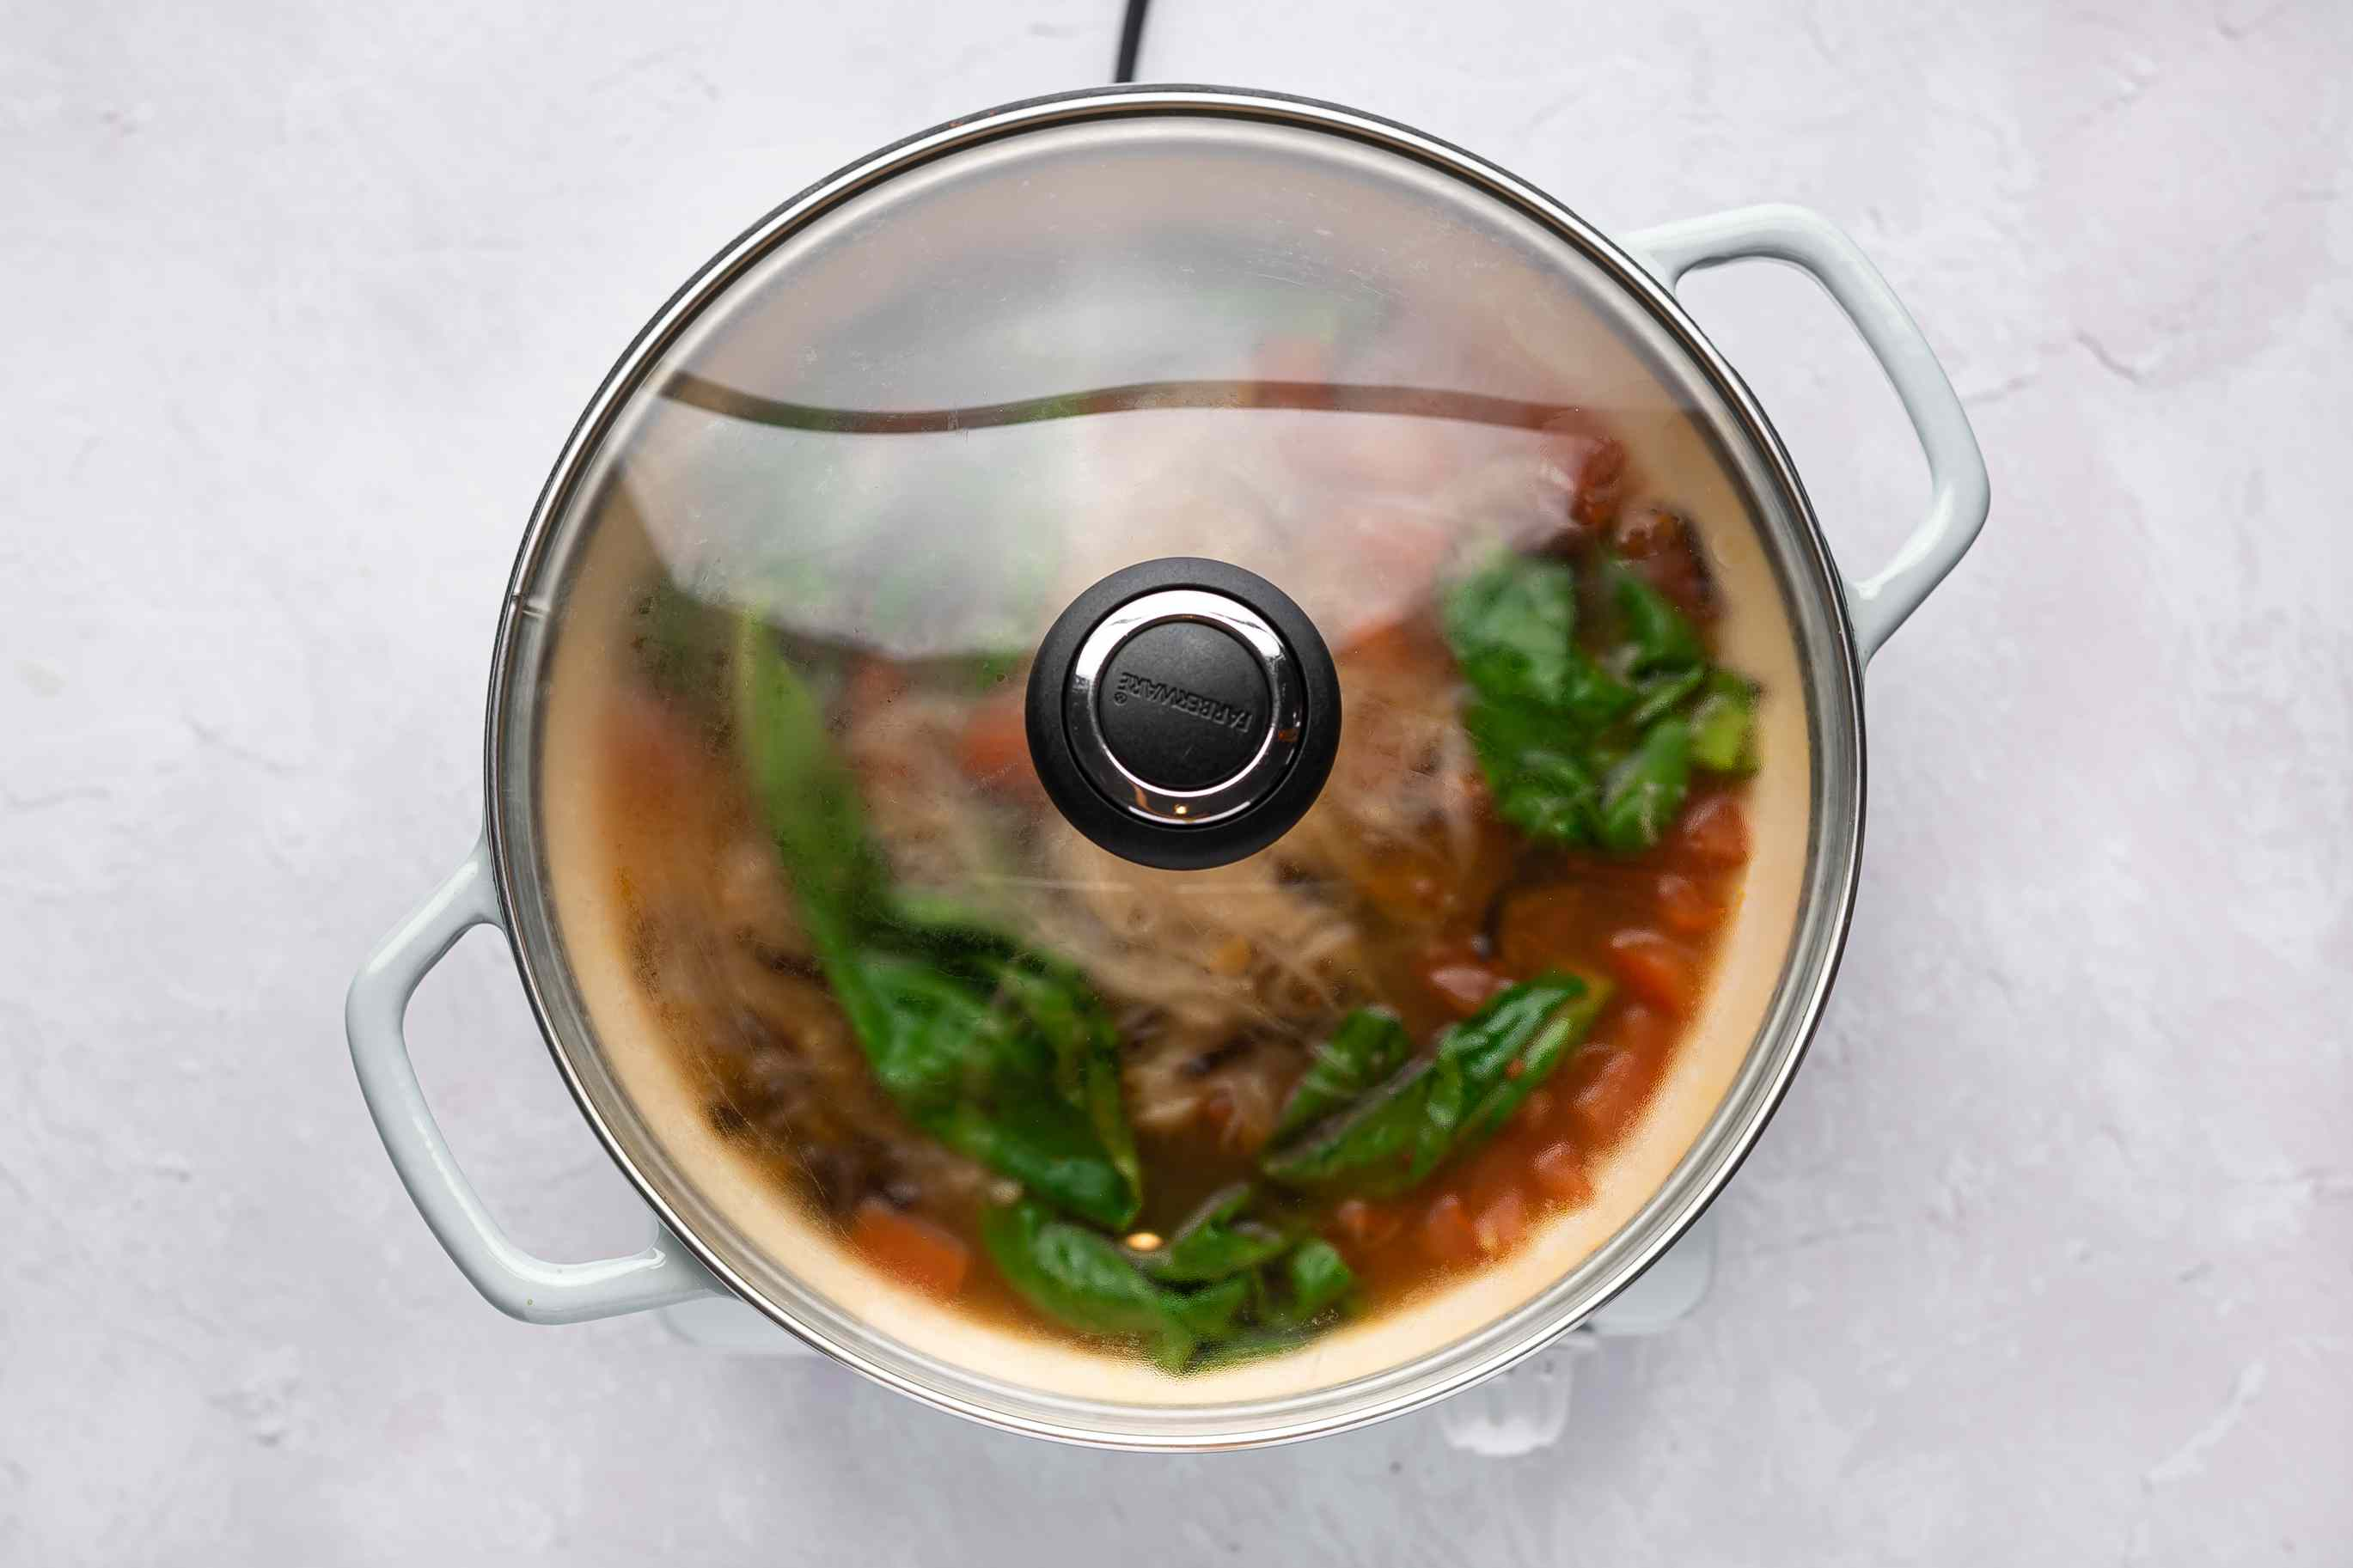 Lunar New Year Longevity Noodles: Misua Soup in a covered pot